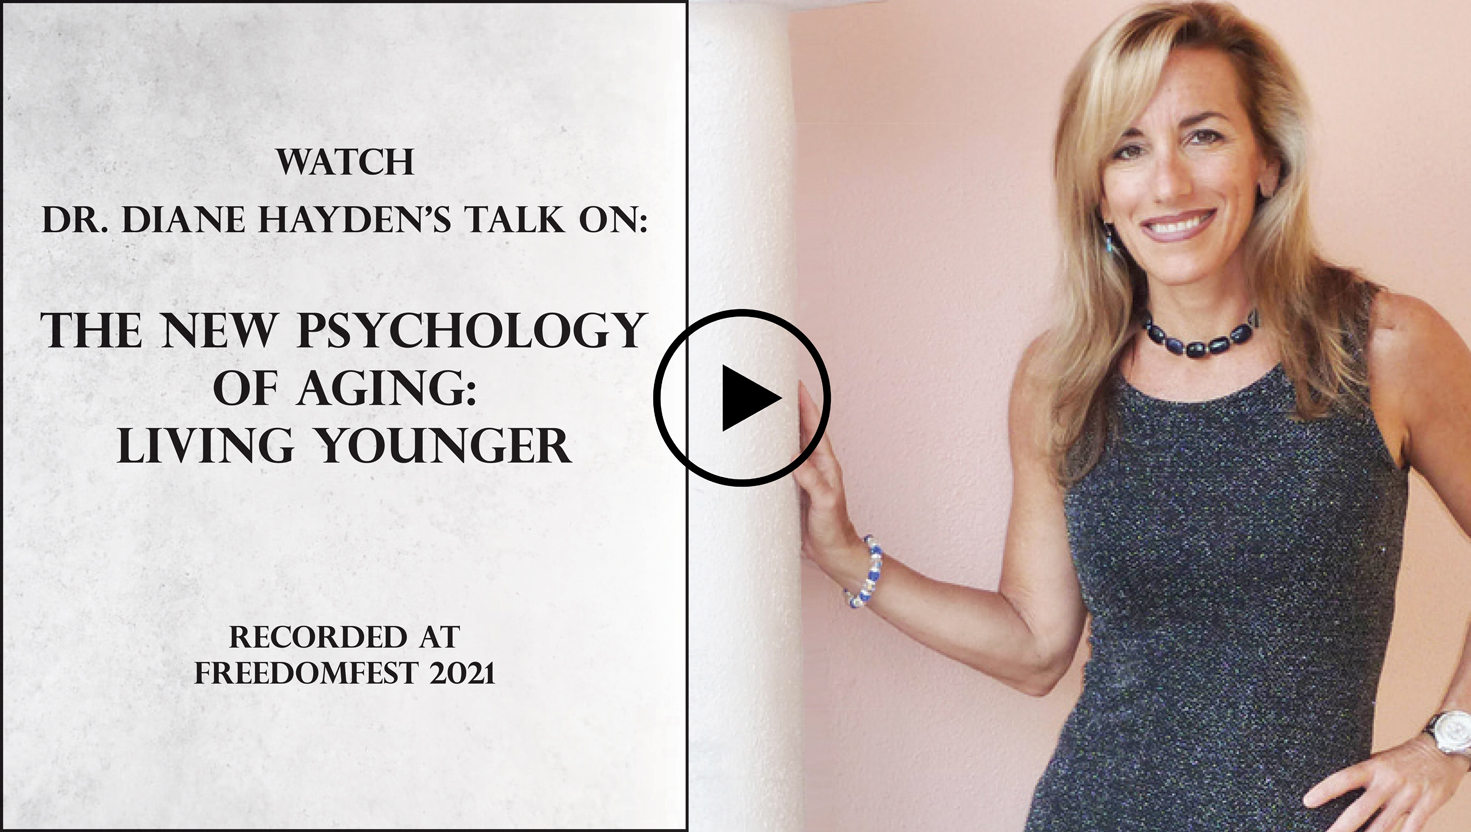 The New Psychology of Aging: Living Younger